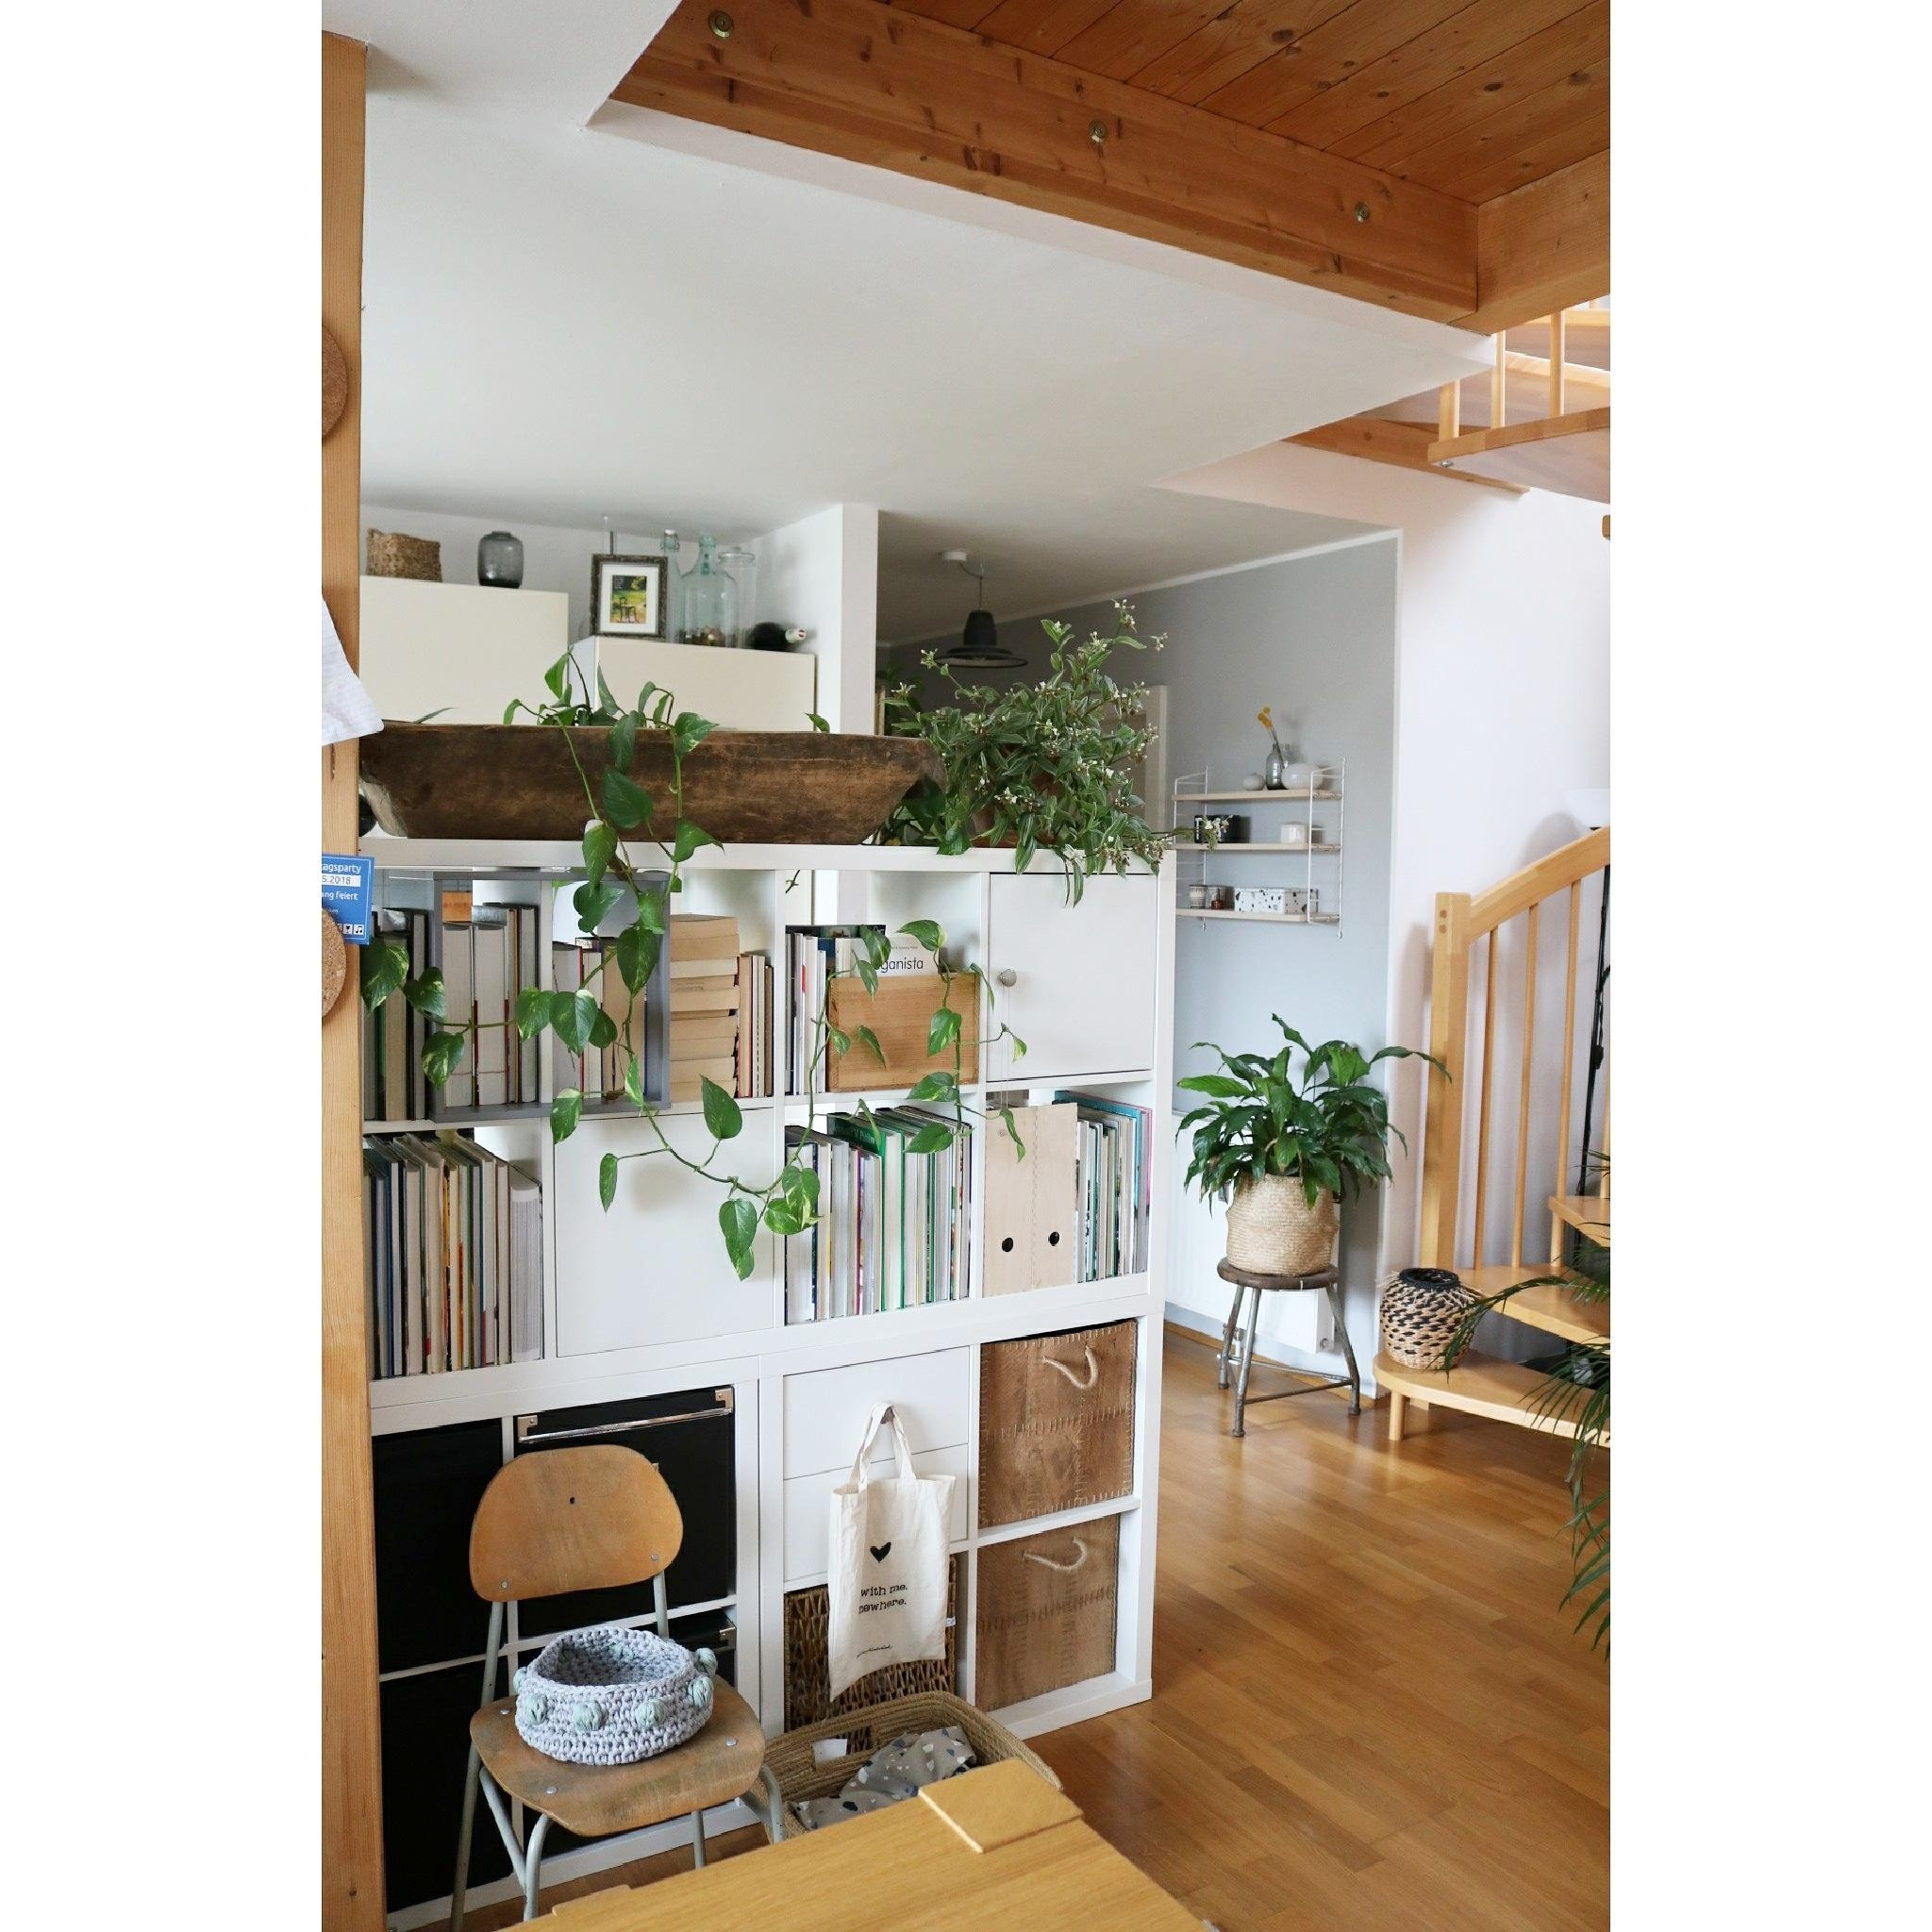 #myhome #wooden #myhappyplace #vintage #greenliving #greens #urbanjungle